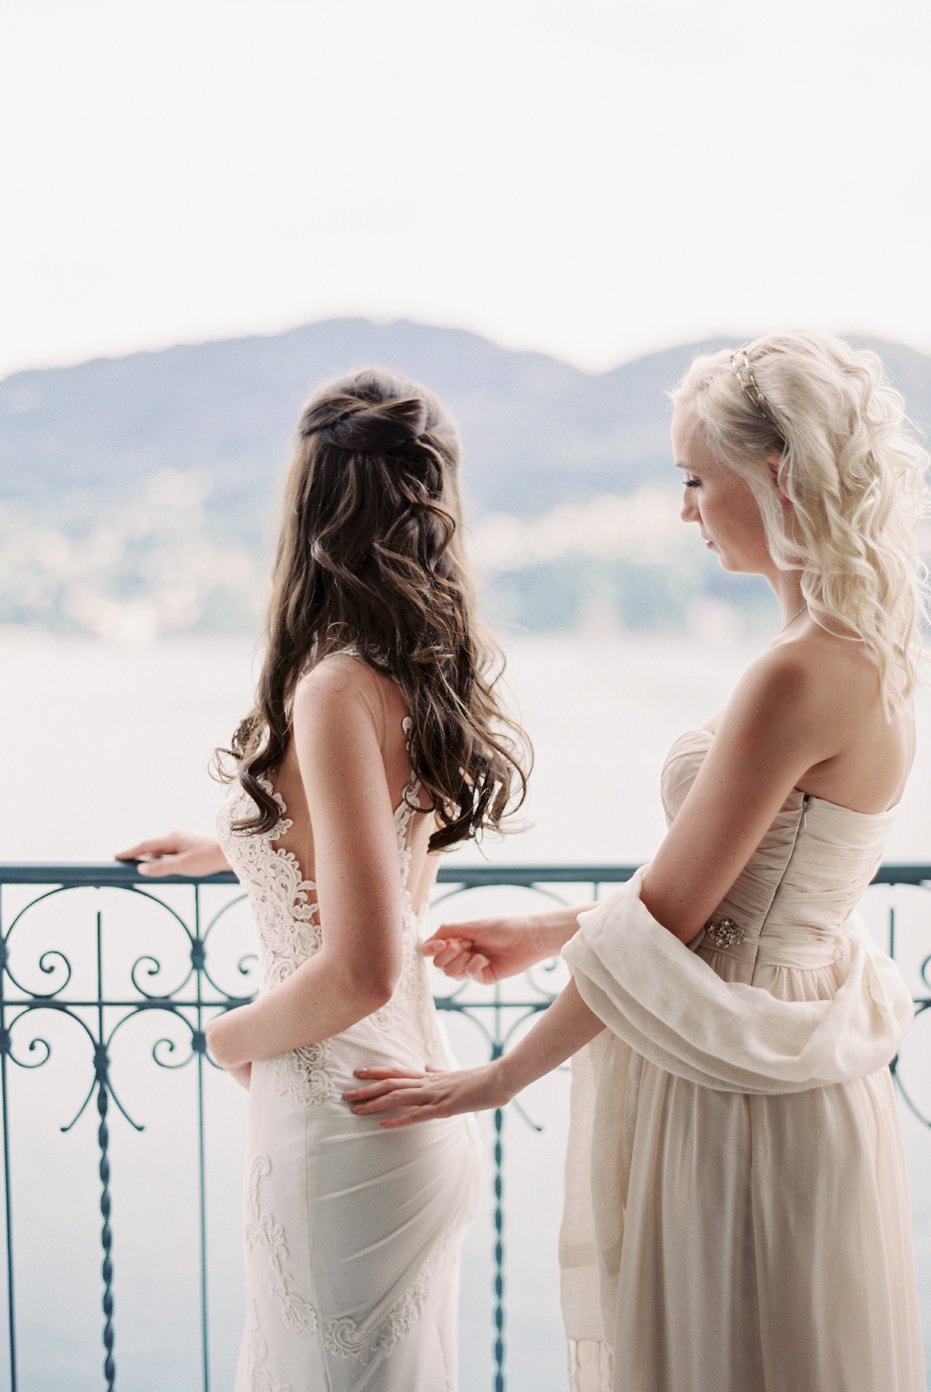 lake_como_italy_villa_balbianello_destination_wedding_melanie_gabrielle_018